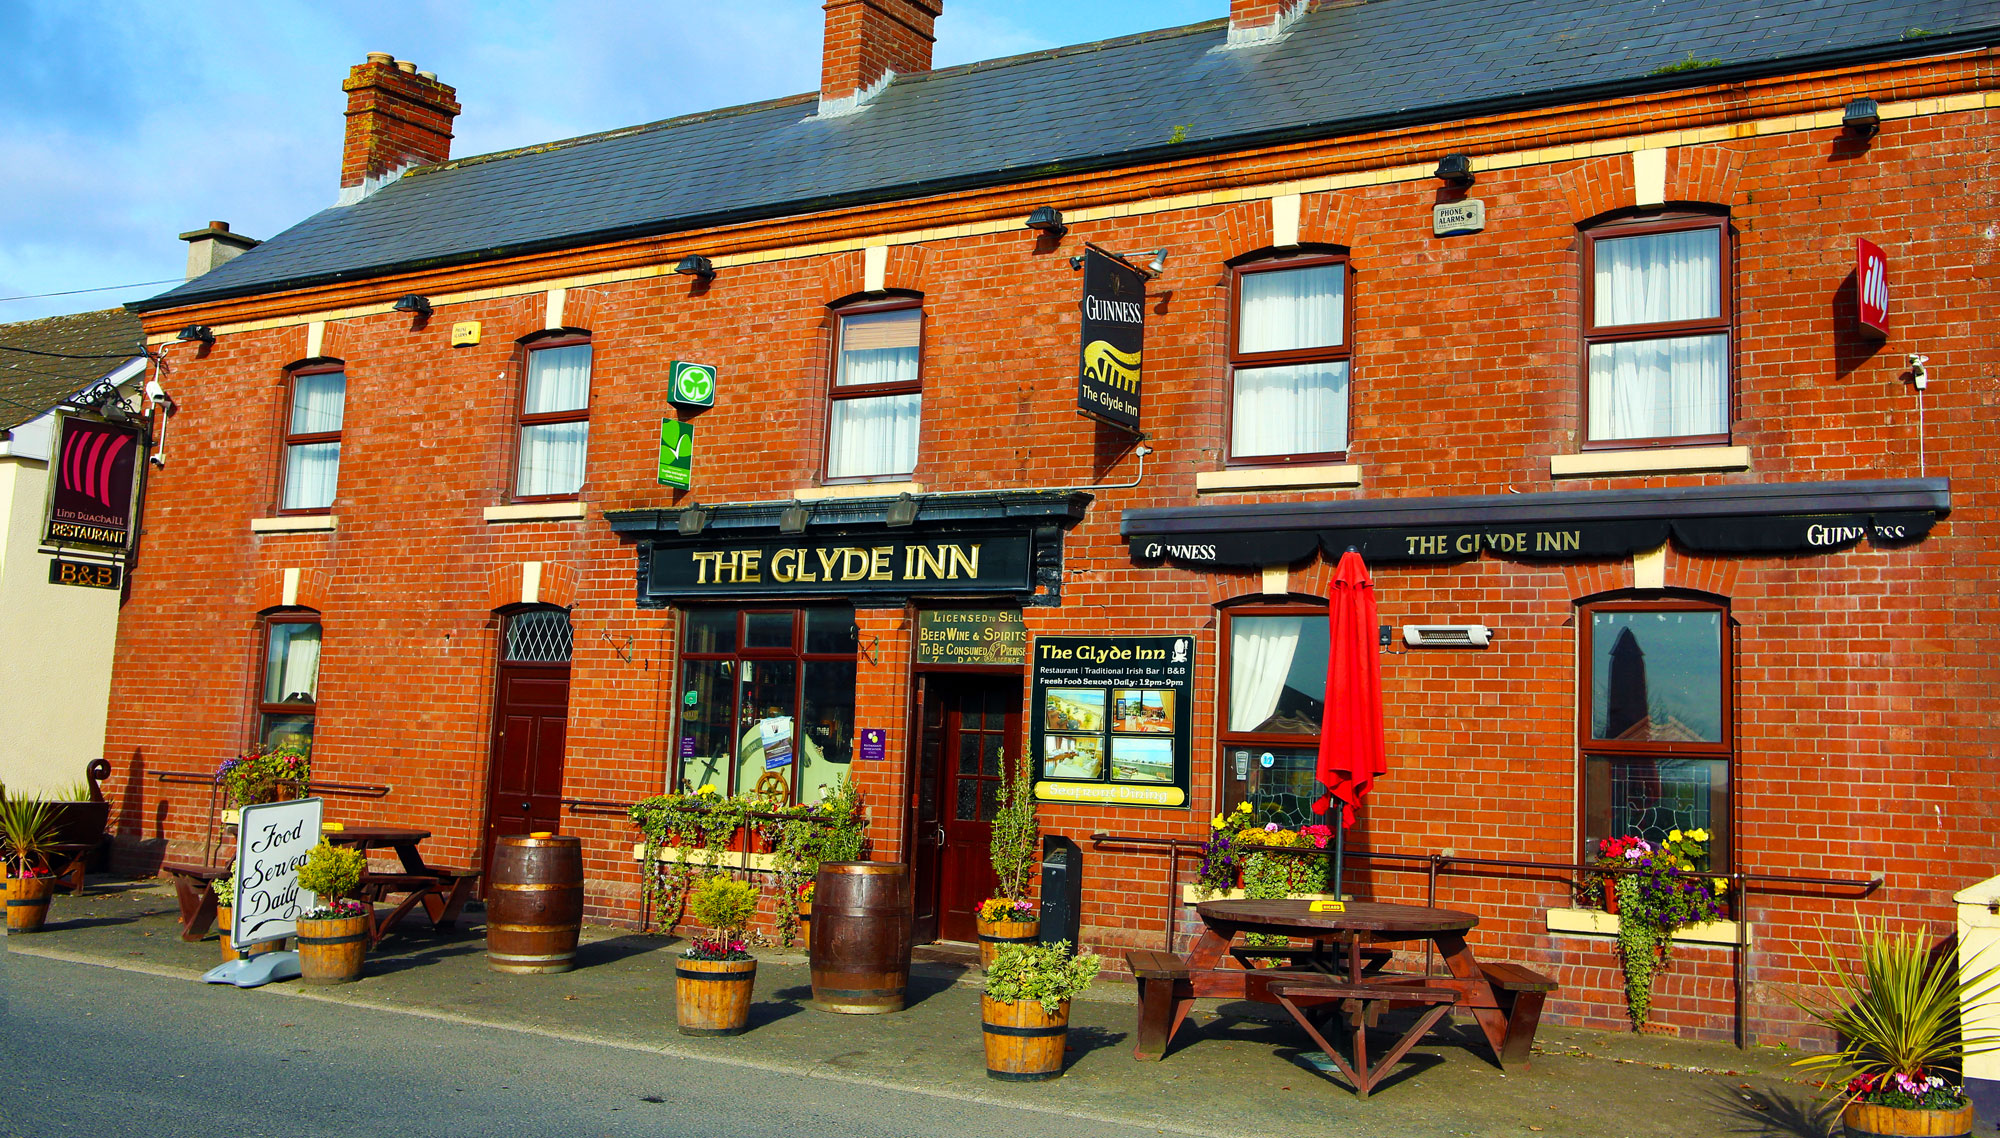 Exterior of Irish Bar at the Glyde Inn